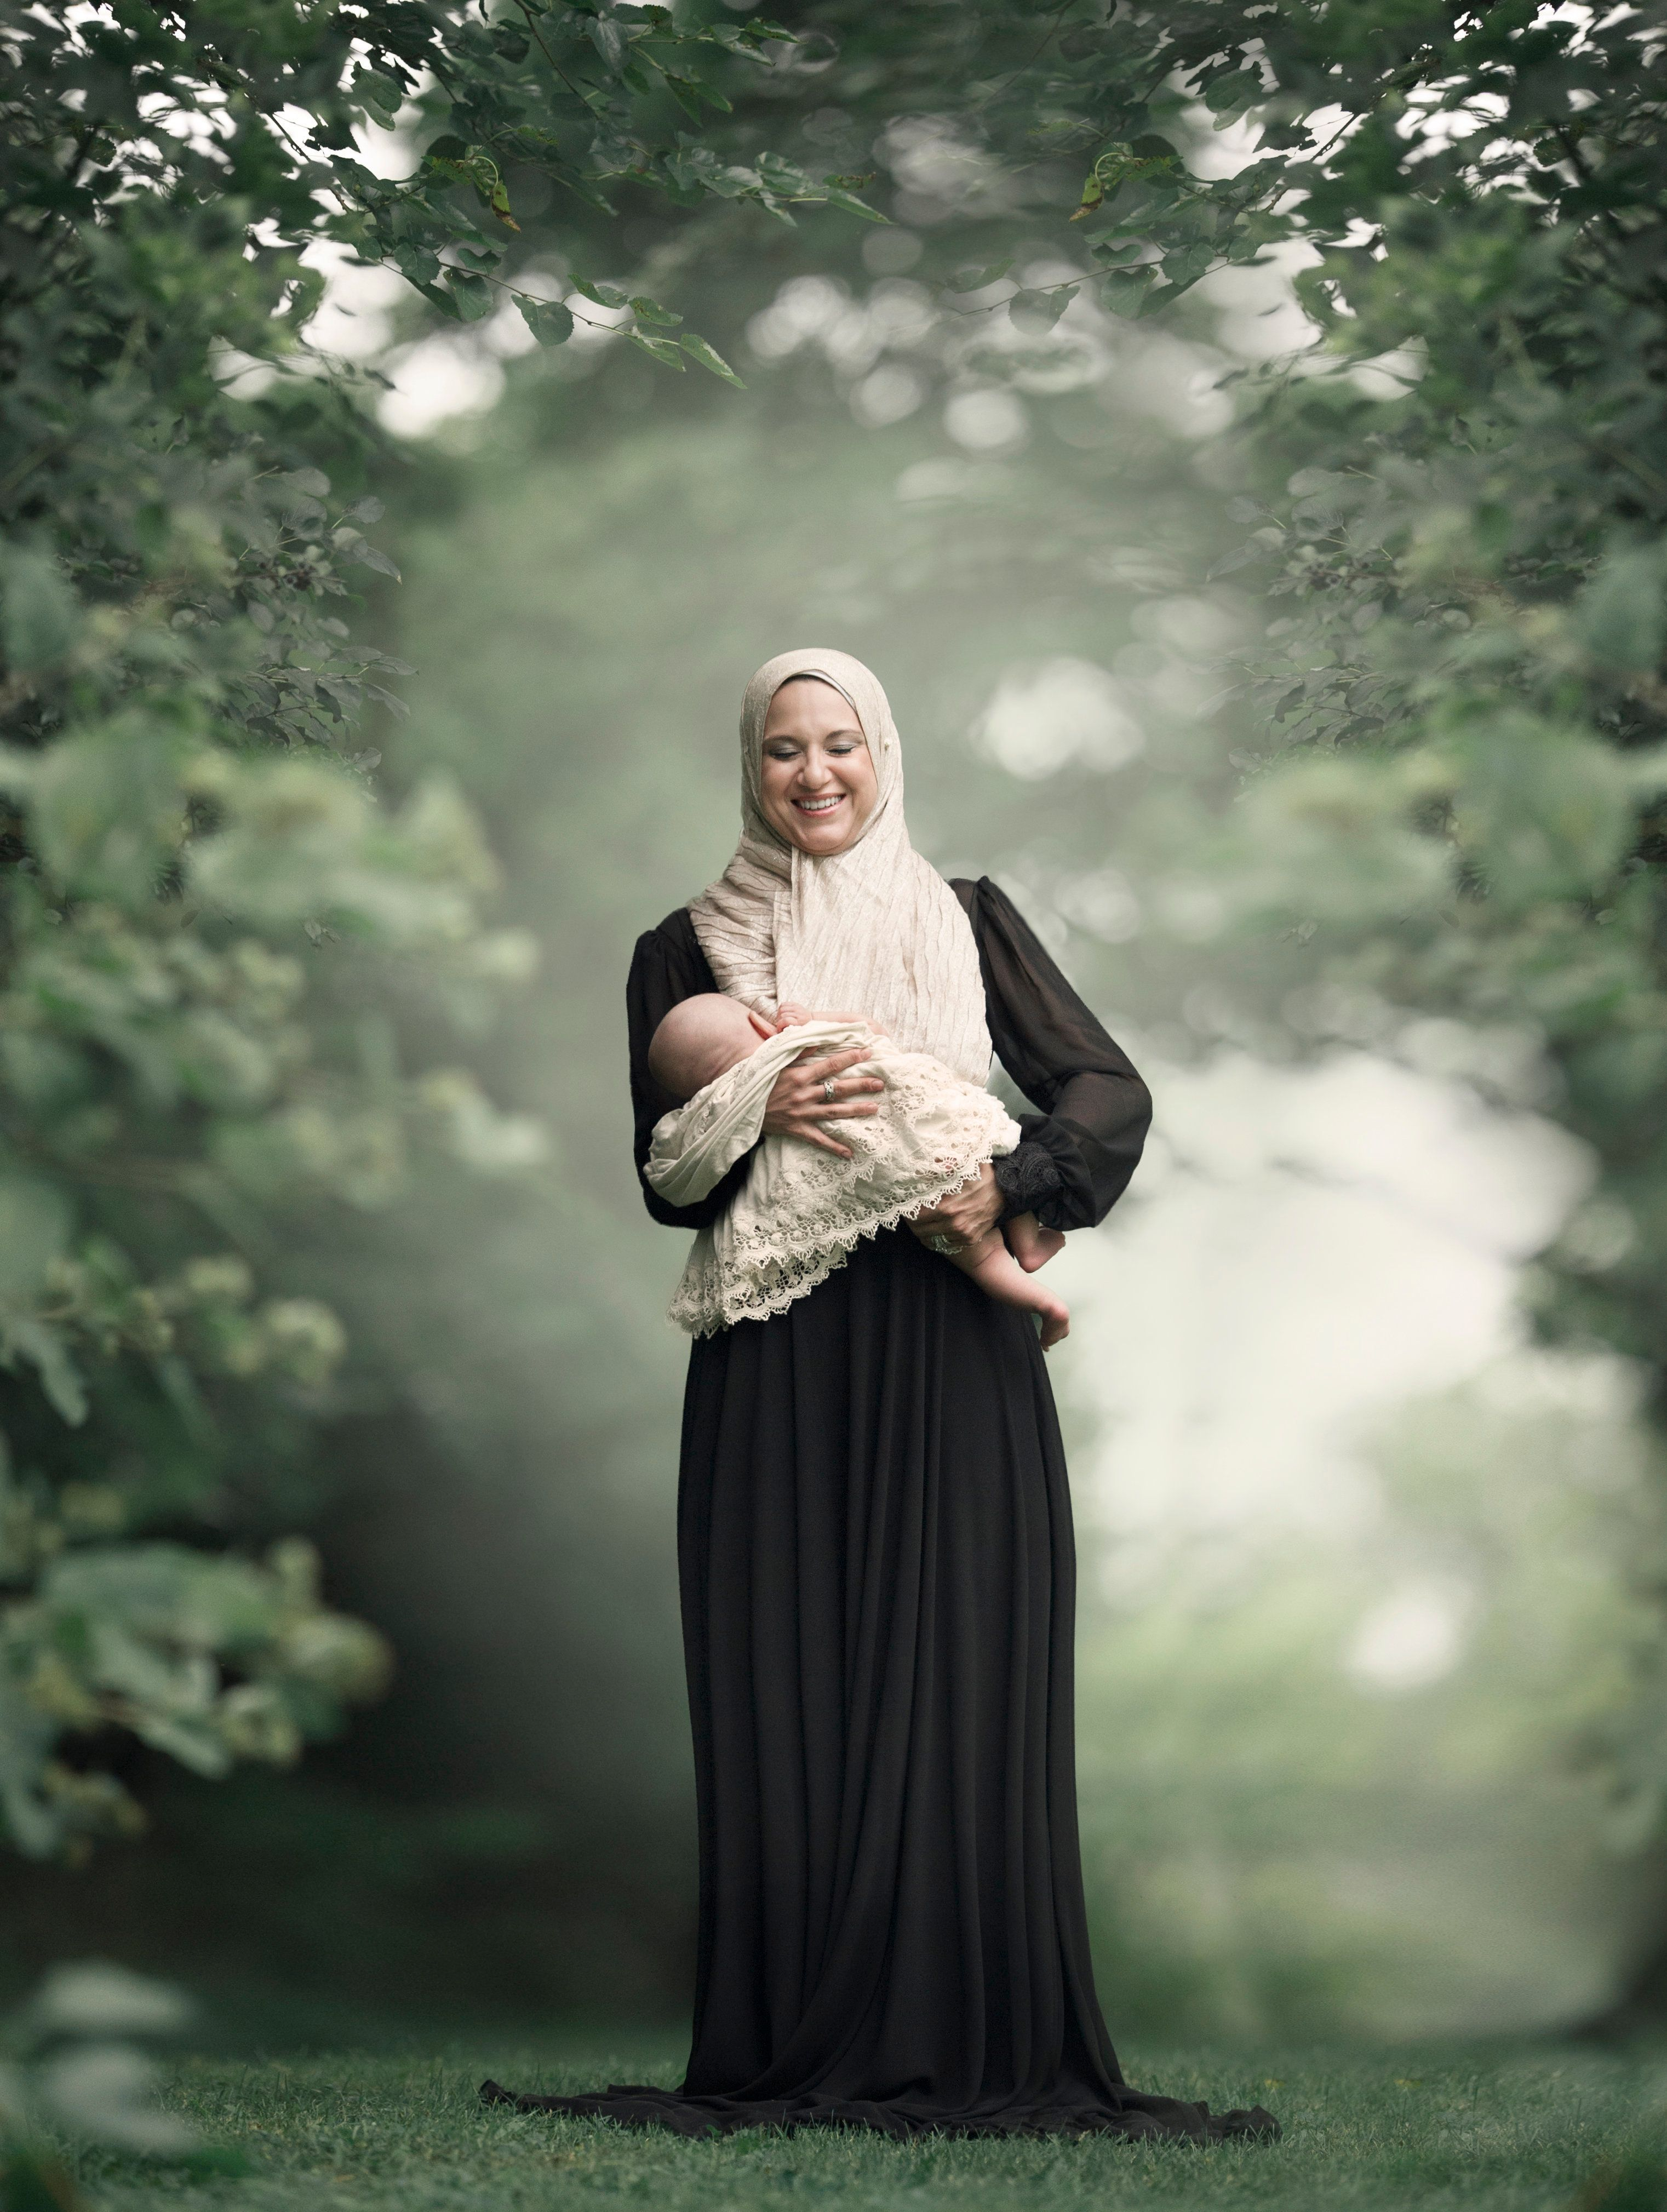 Ivens said she hopes her photos can help break down the stigma around breastfeeding in